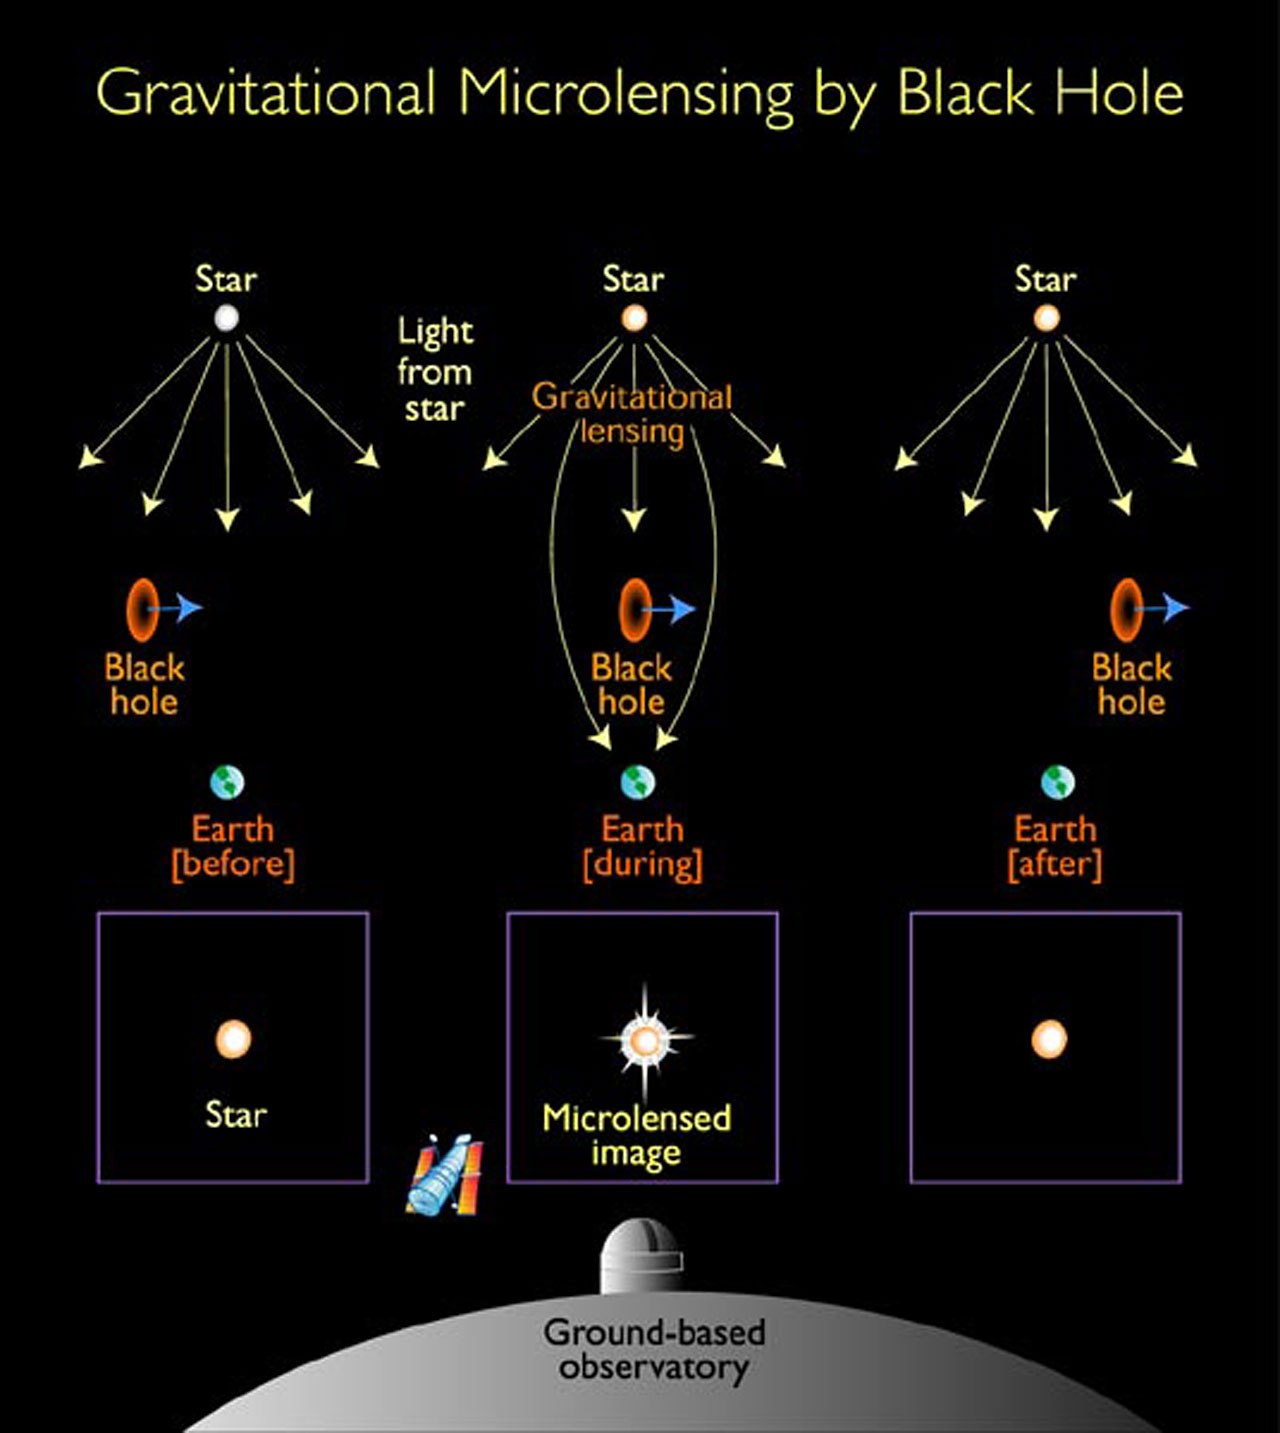 Gravitational microlensing by black hole  Illustration